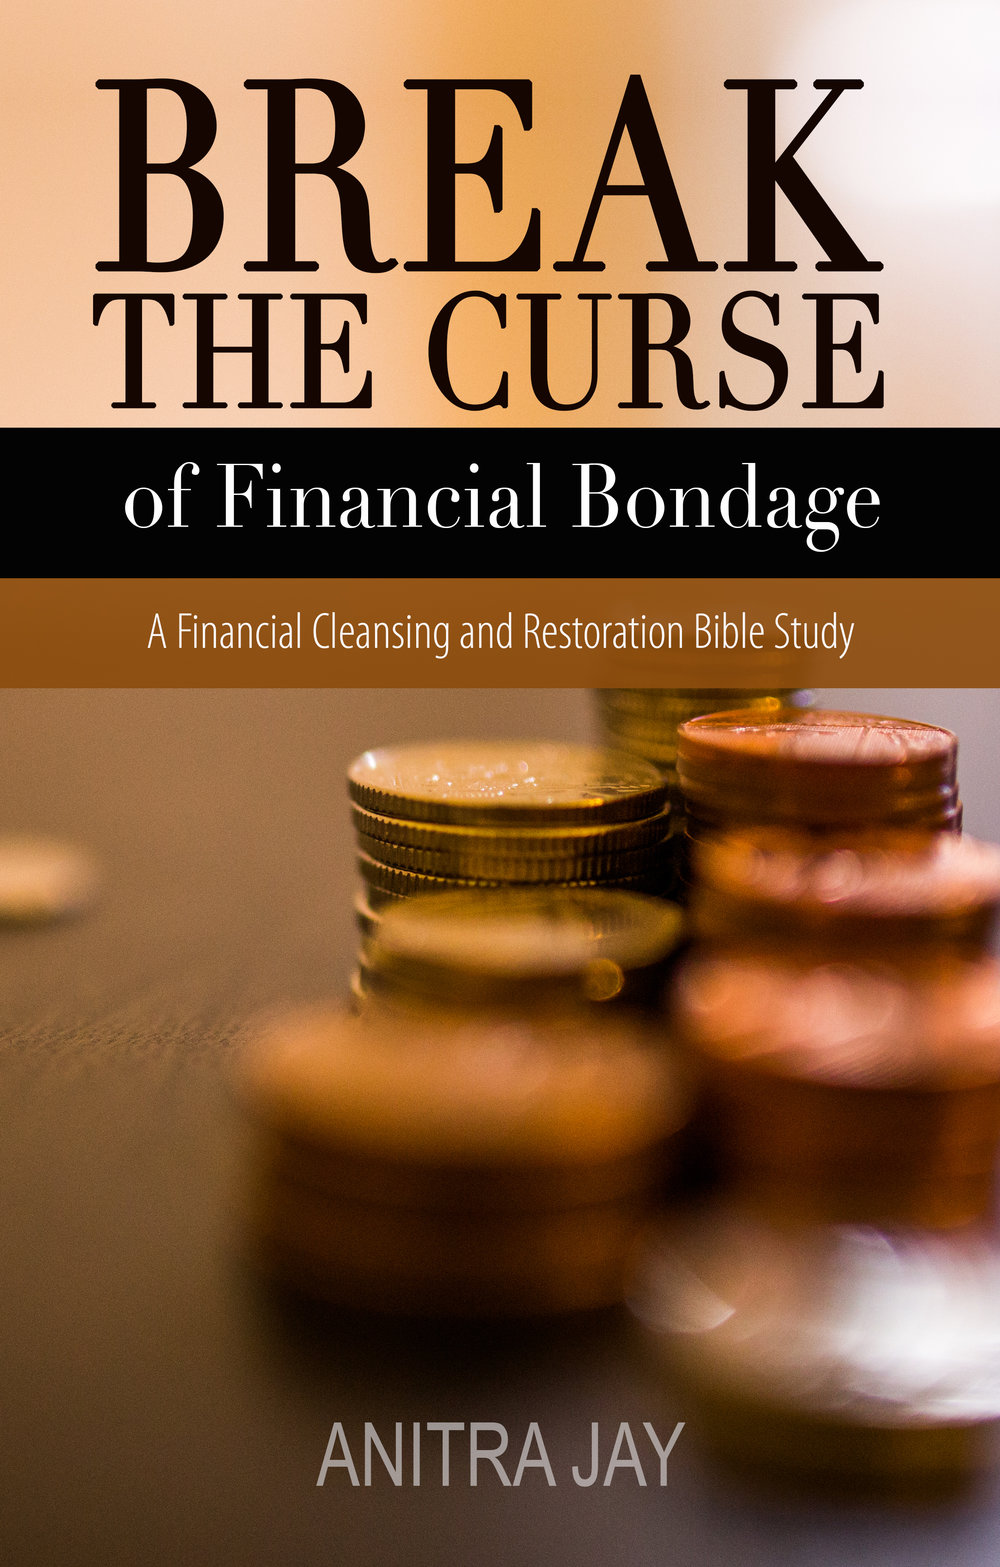 financial_bondage_bible_study.jpg